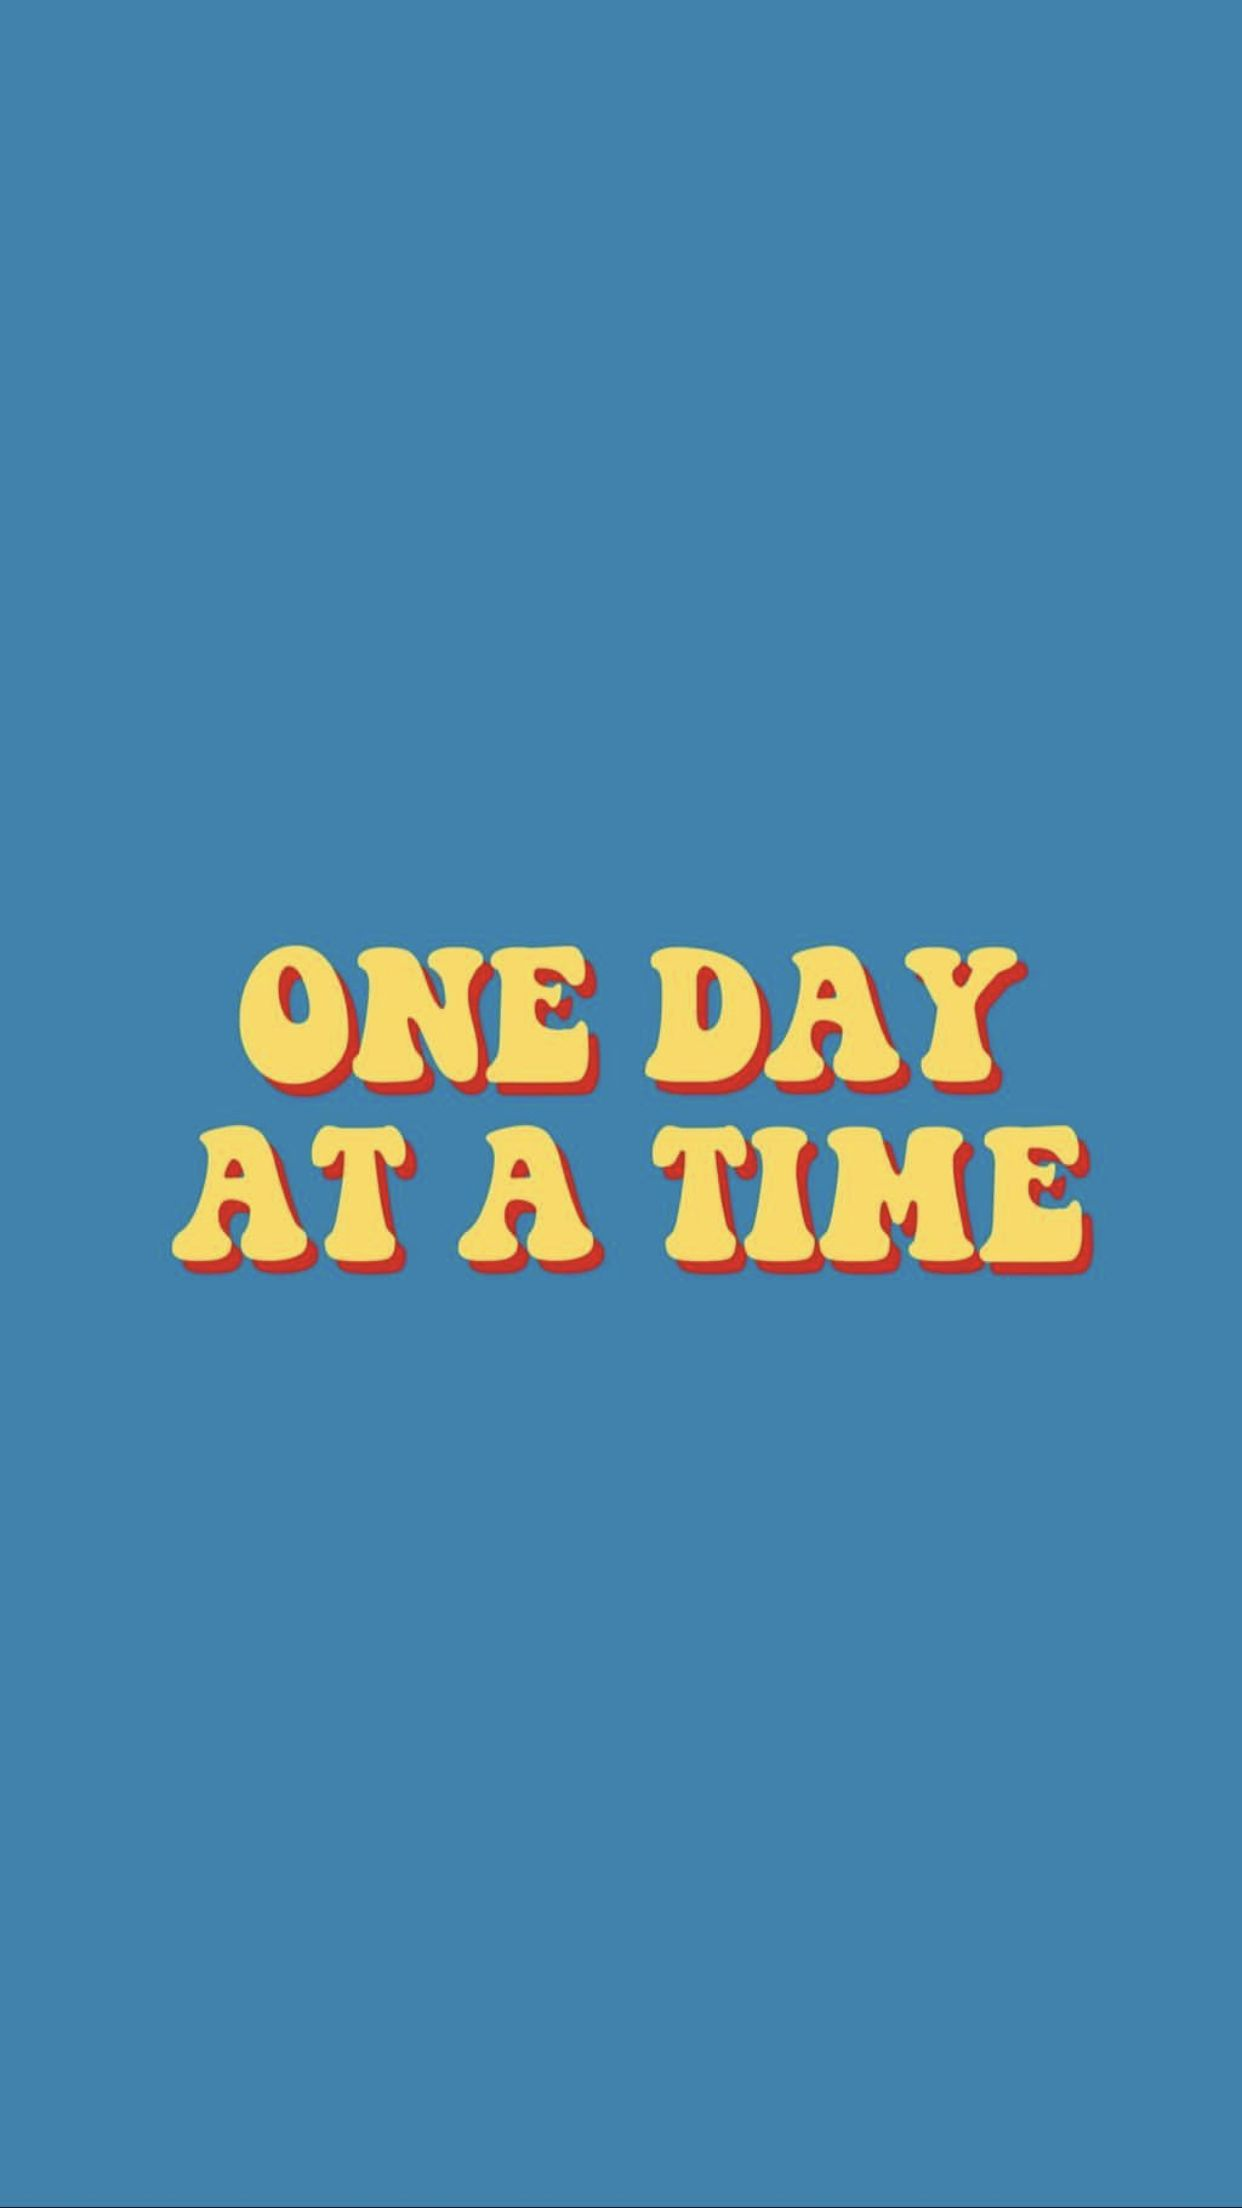 One Day At A Time Wallpaper Quotes Words Wallpaper Motivational Quotes Iphone wallpaper change with time of day